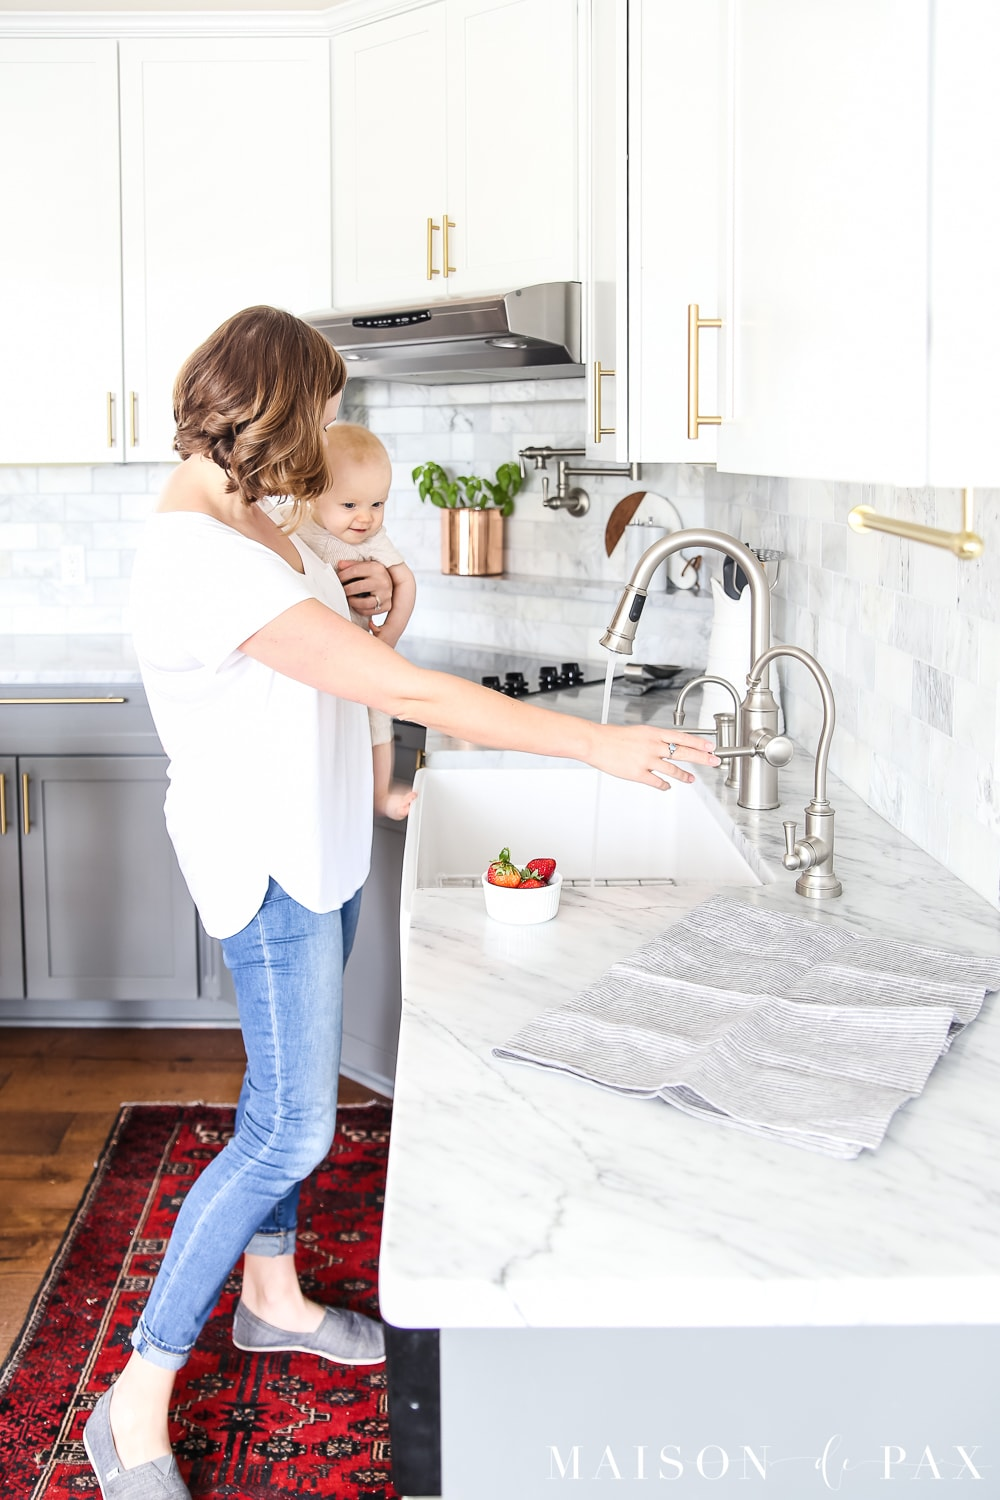 Simple spring kitchen: Don't miss these five ways to refresh your kitchen for spring without buying anything new! #springkitchen #kitcheninspo #marblekitchen #kitchendesign #springdecor #springdecorating #kitchendecor #twotonekitchen